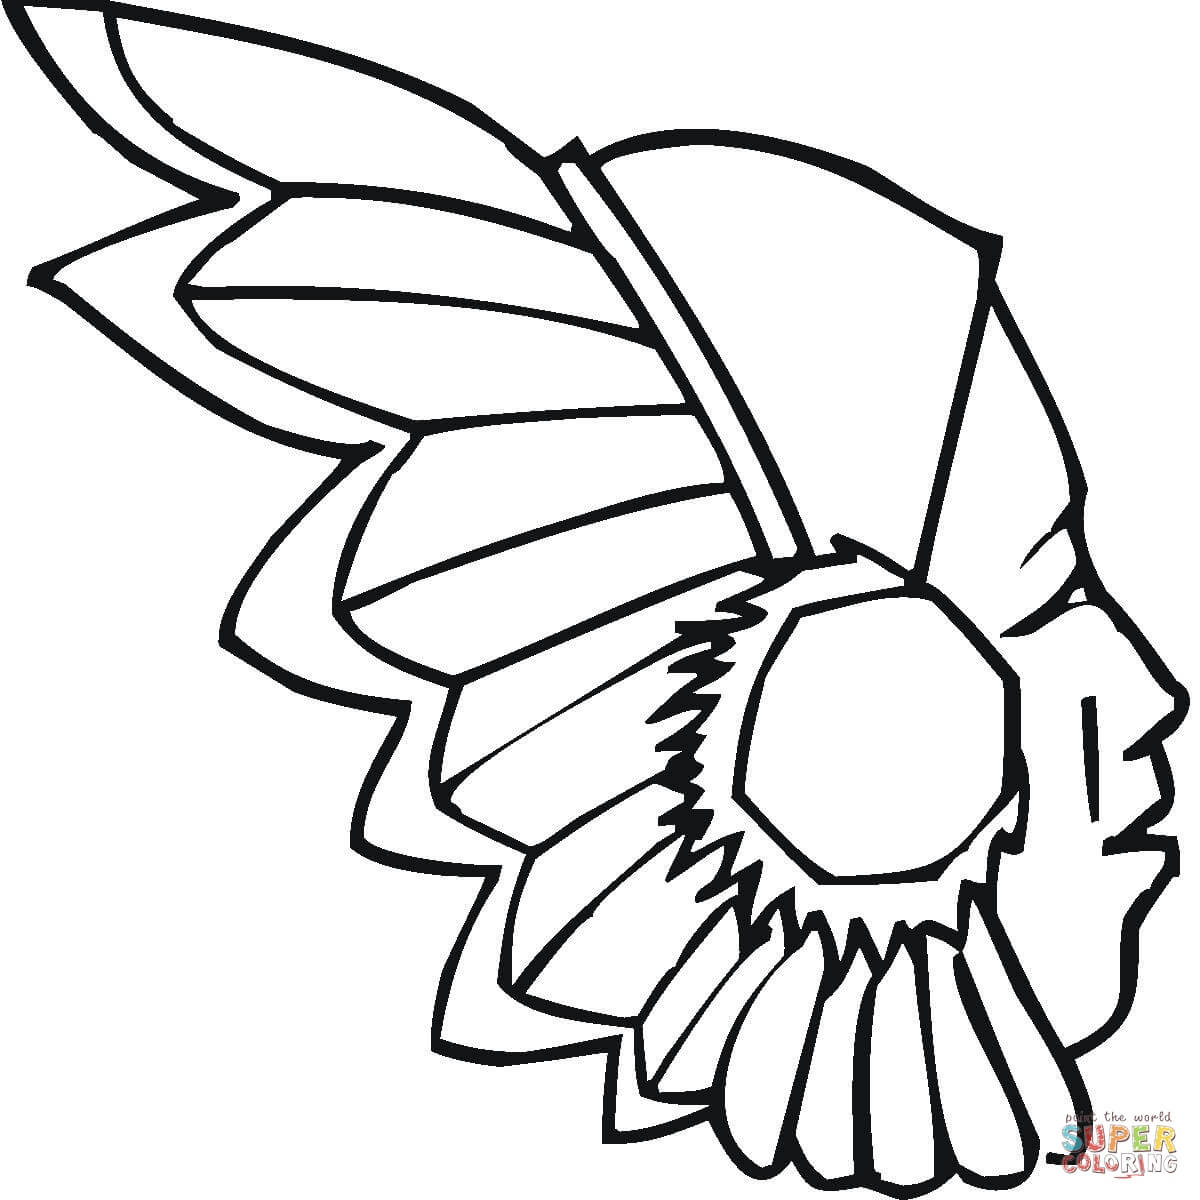 Indian Headdress Coloring Page | Free Printable Coloring Pages ...